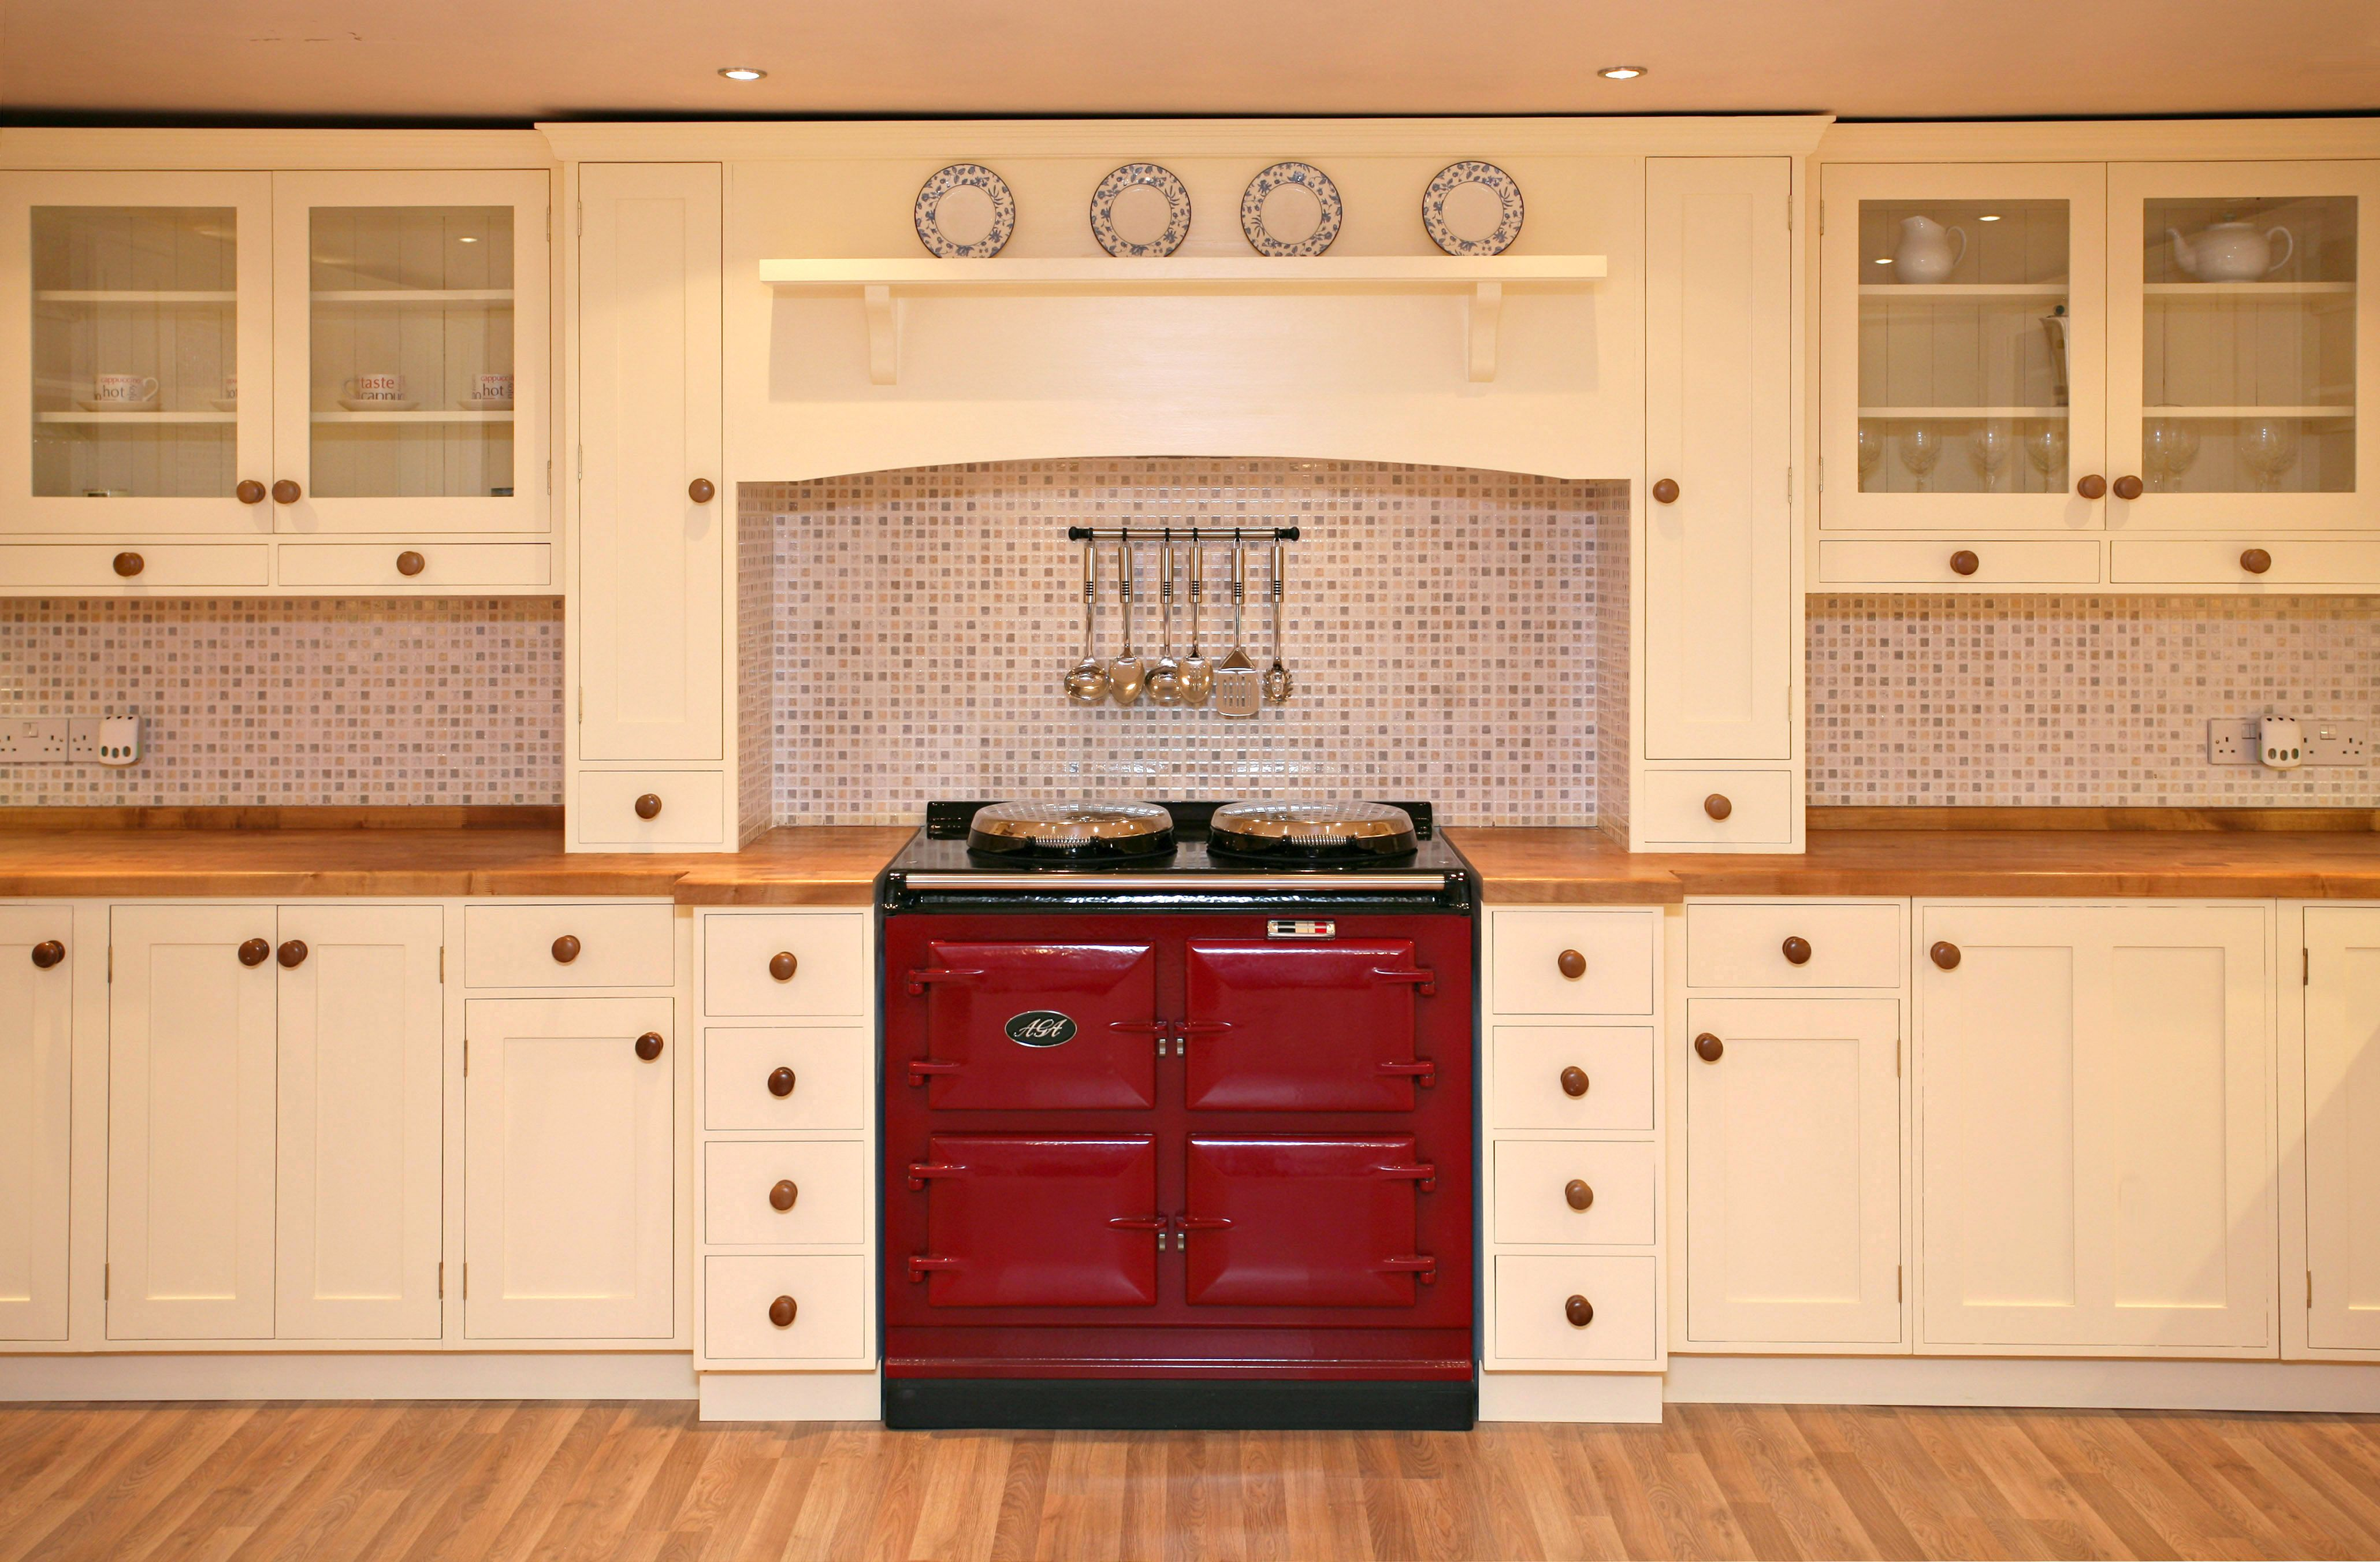 Custom kitchens by john wilkins - 17 Best Images About Aga On Pinterest Stove Property For Rent And Ranges